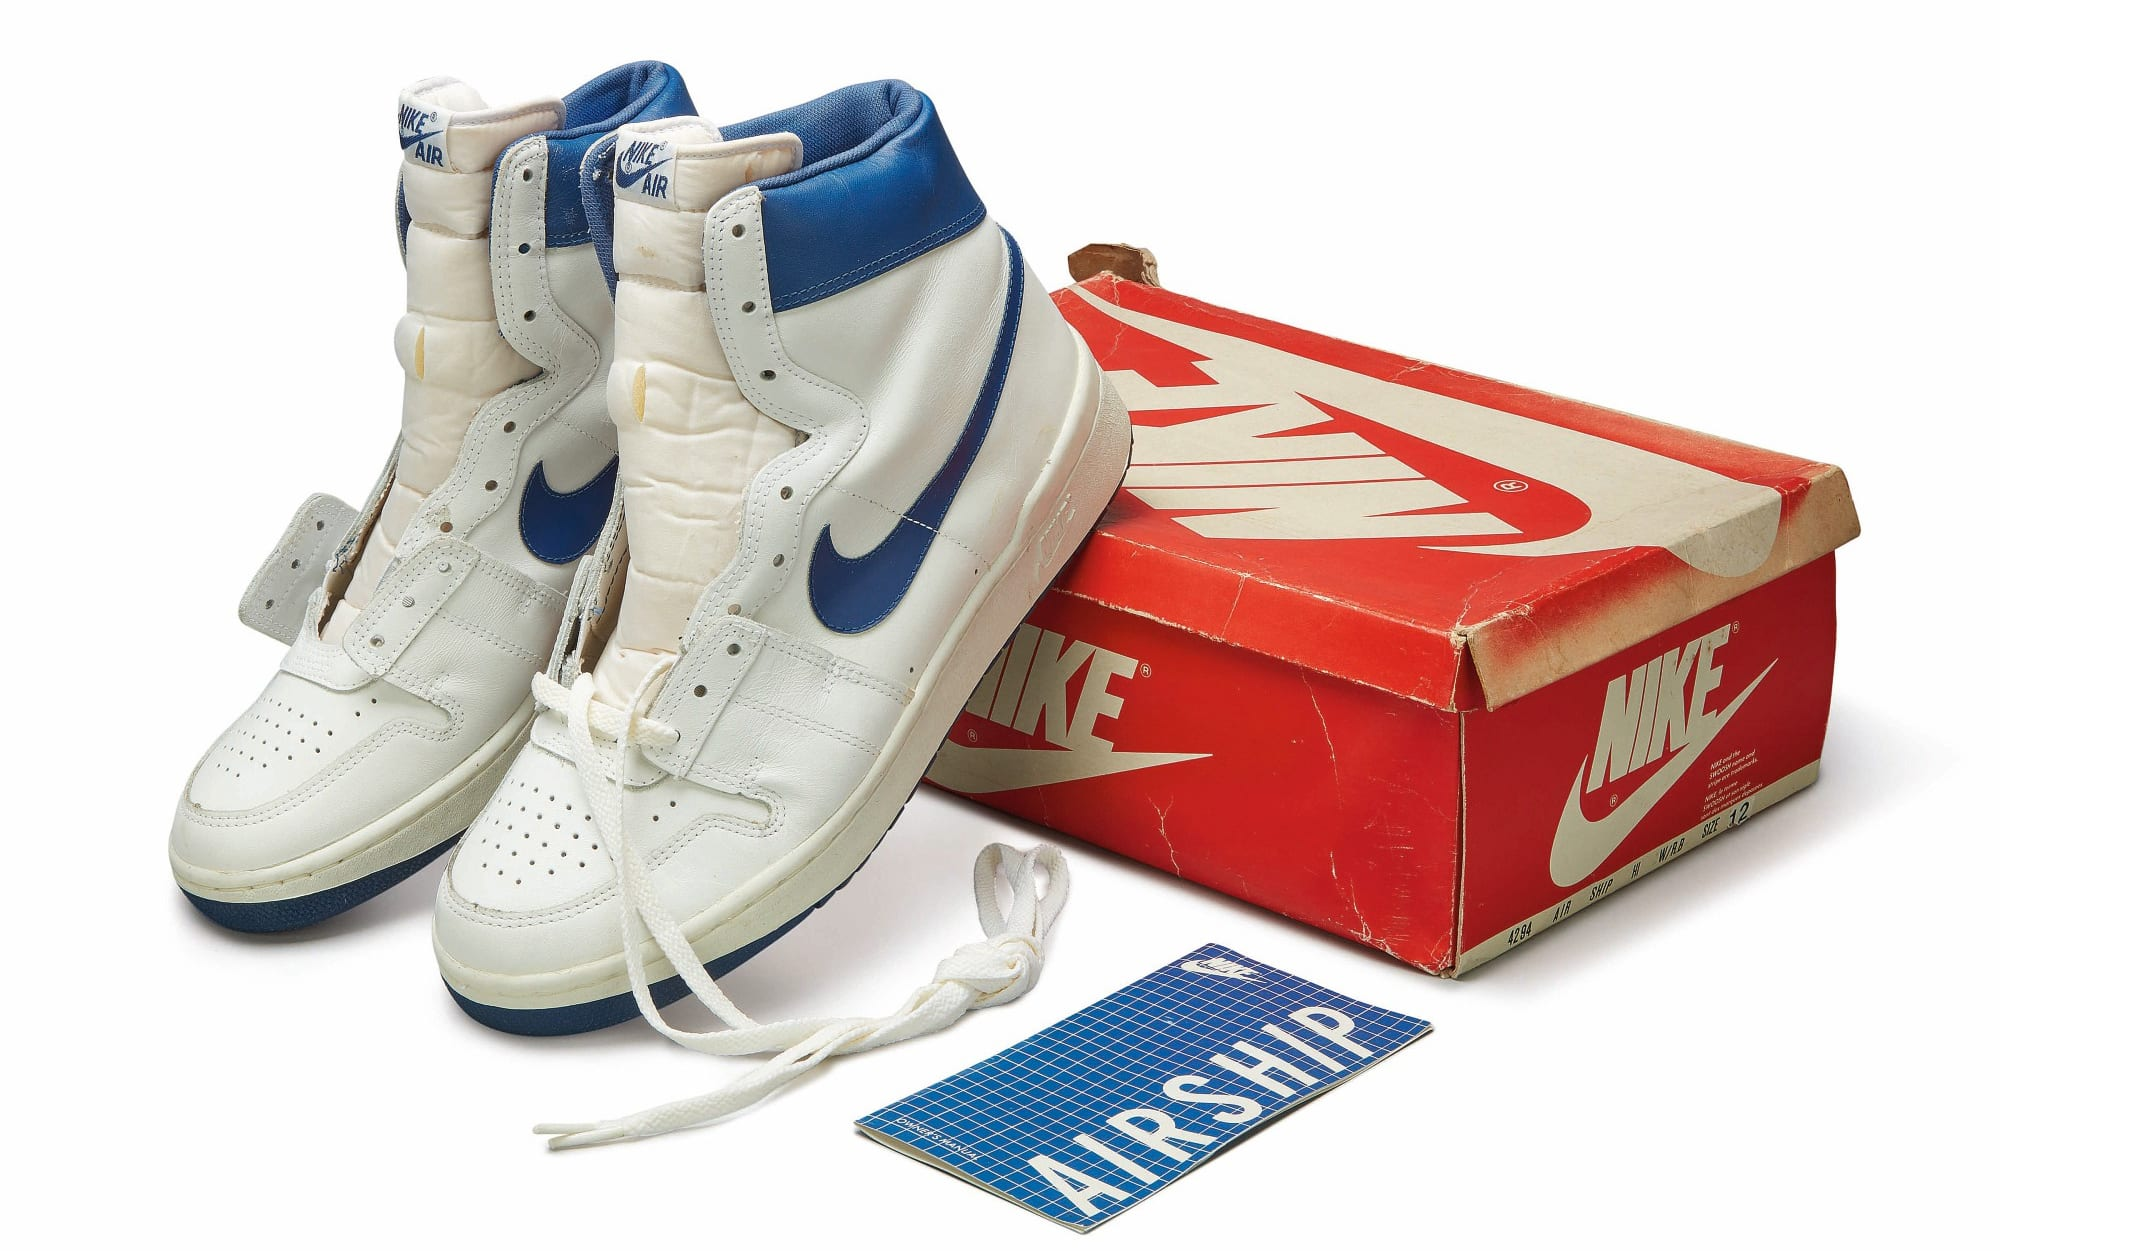 Nike Air Ship 1984, Foto: Sotheby's